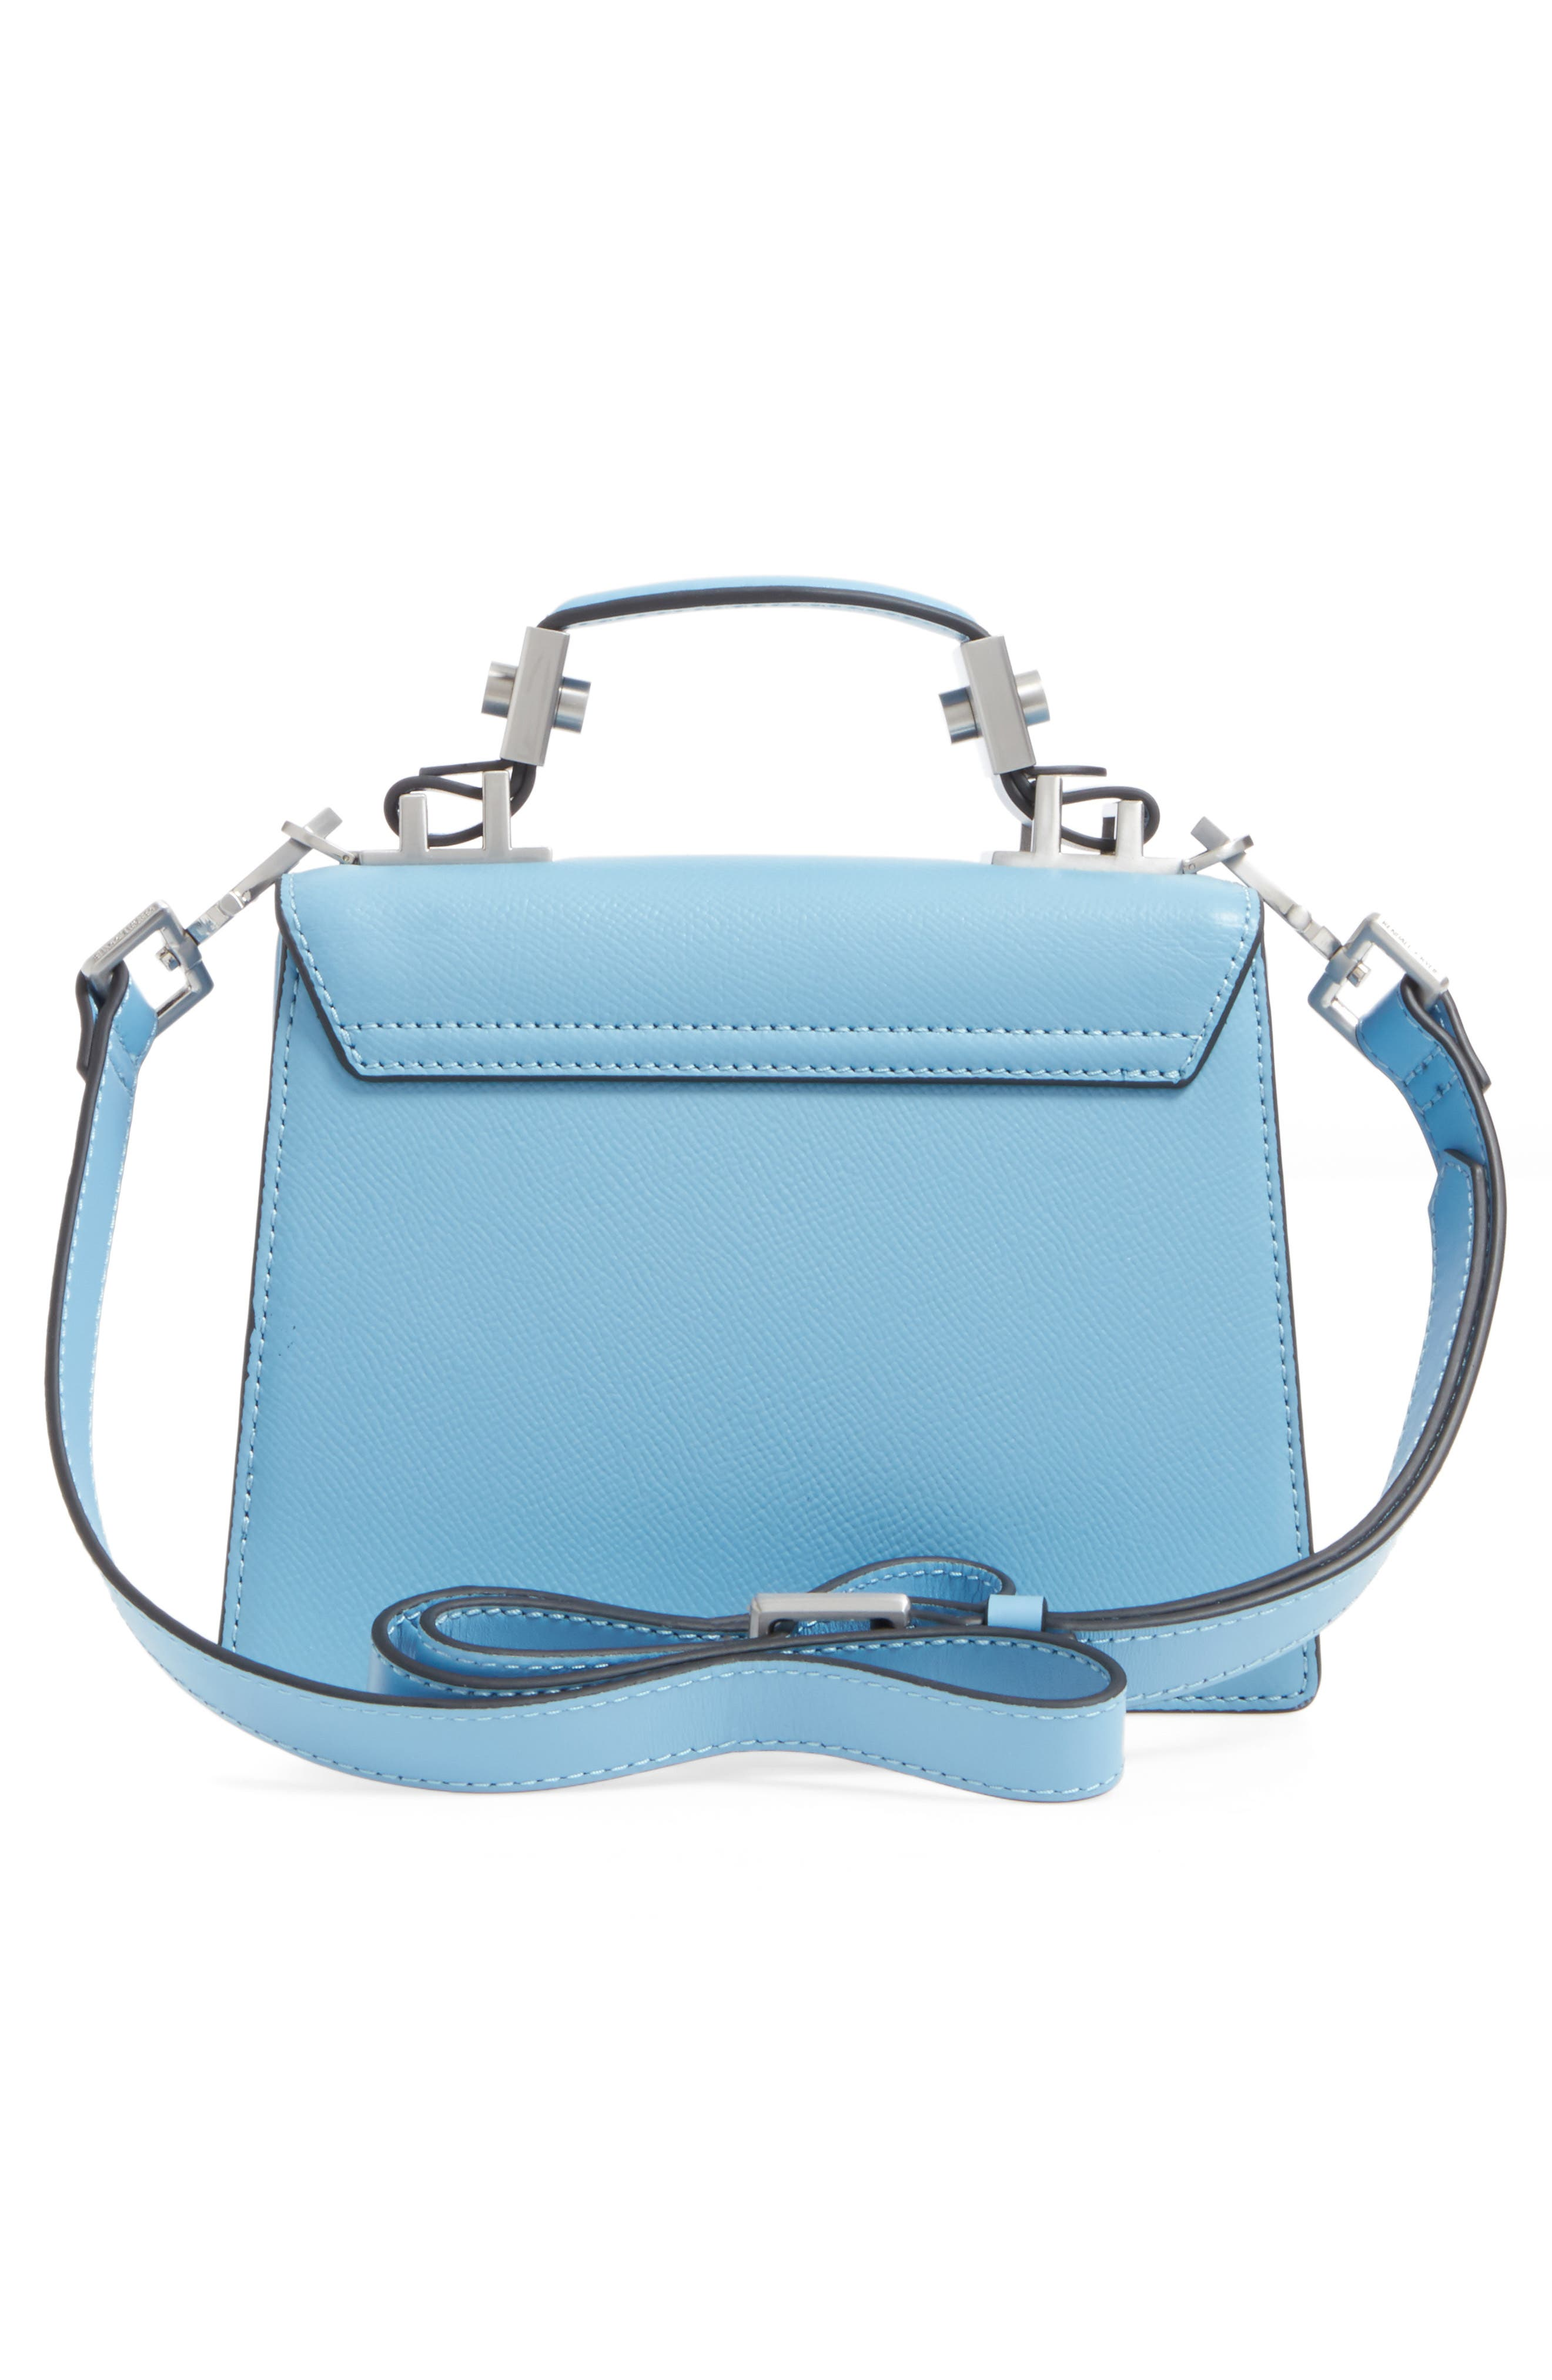 Alternate Image 3  - KENDALL + KYLIE Lips Leather Top Handle Satchel